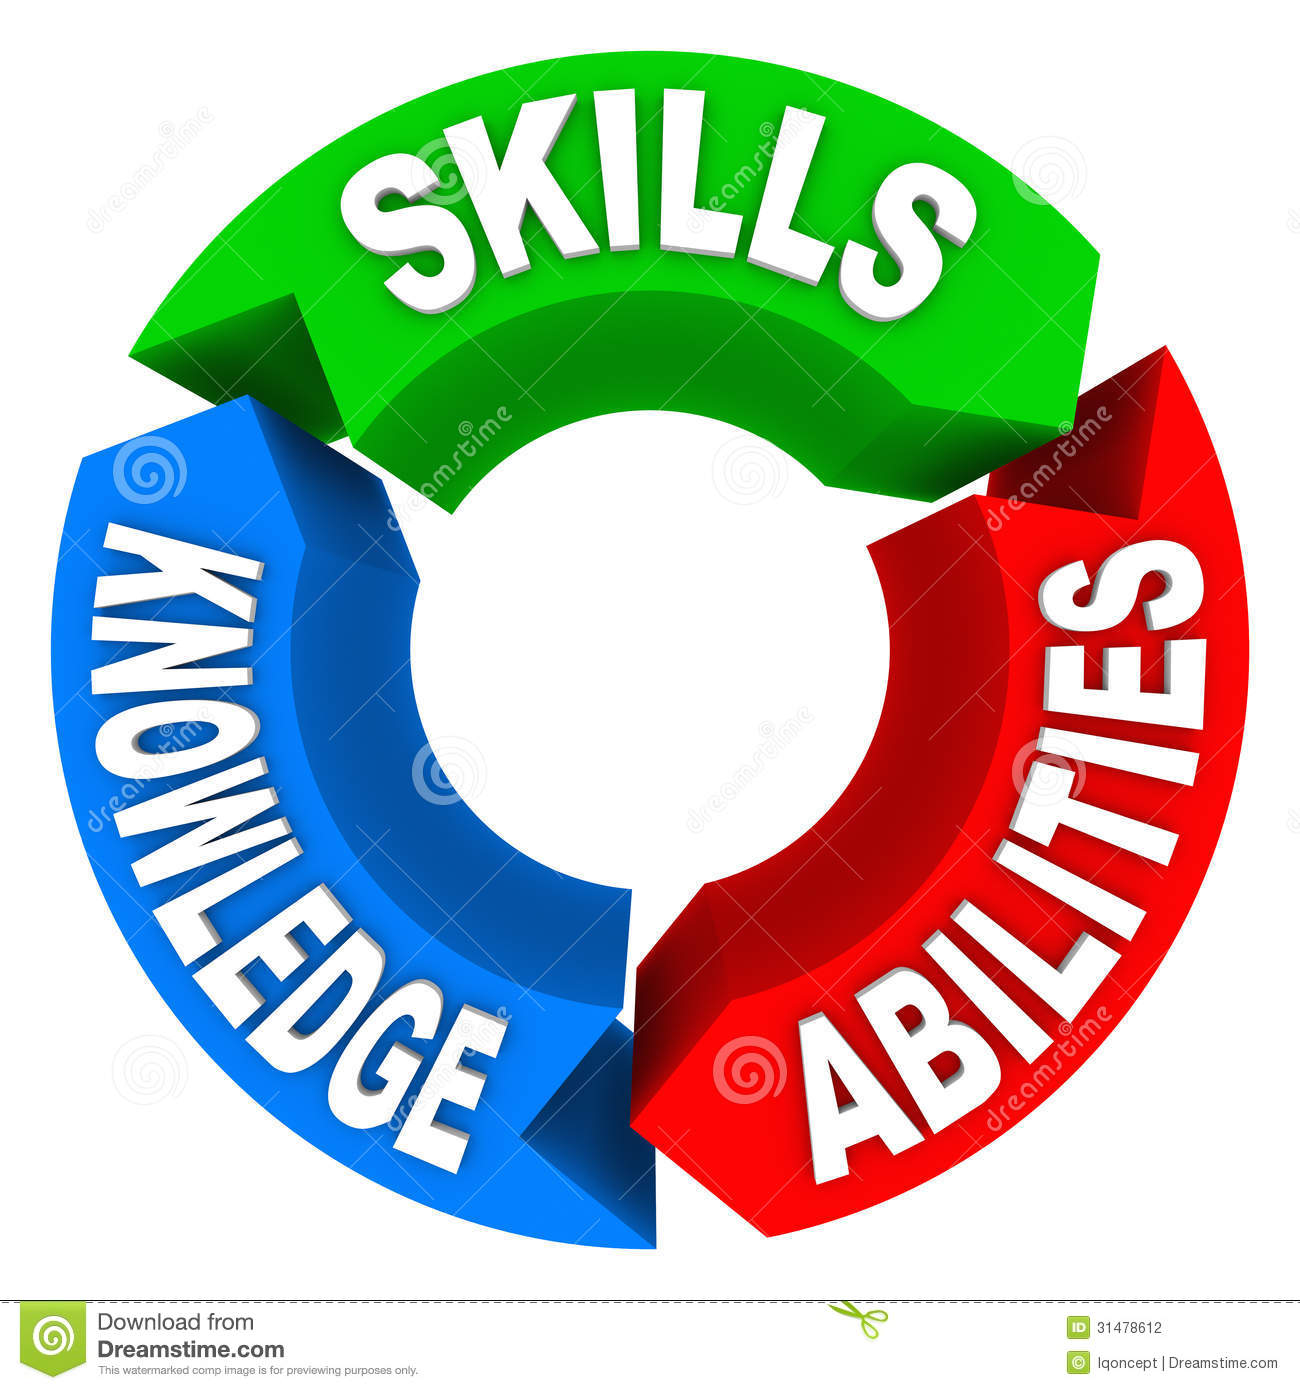 Three Qualities Or Criteria That Are Essential For A Job Candidate Or